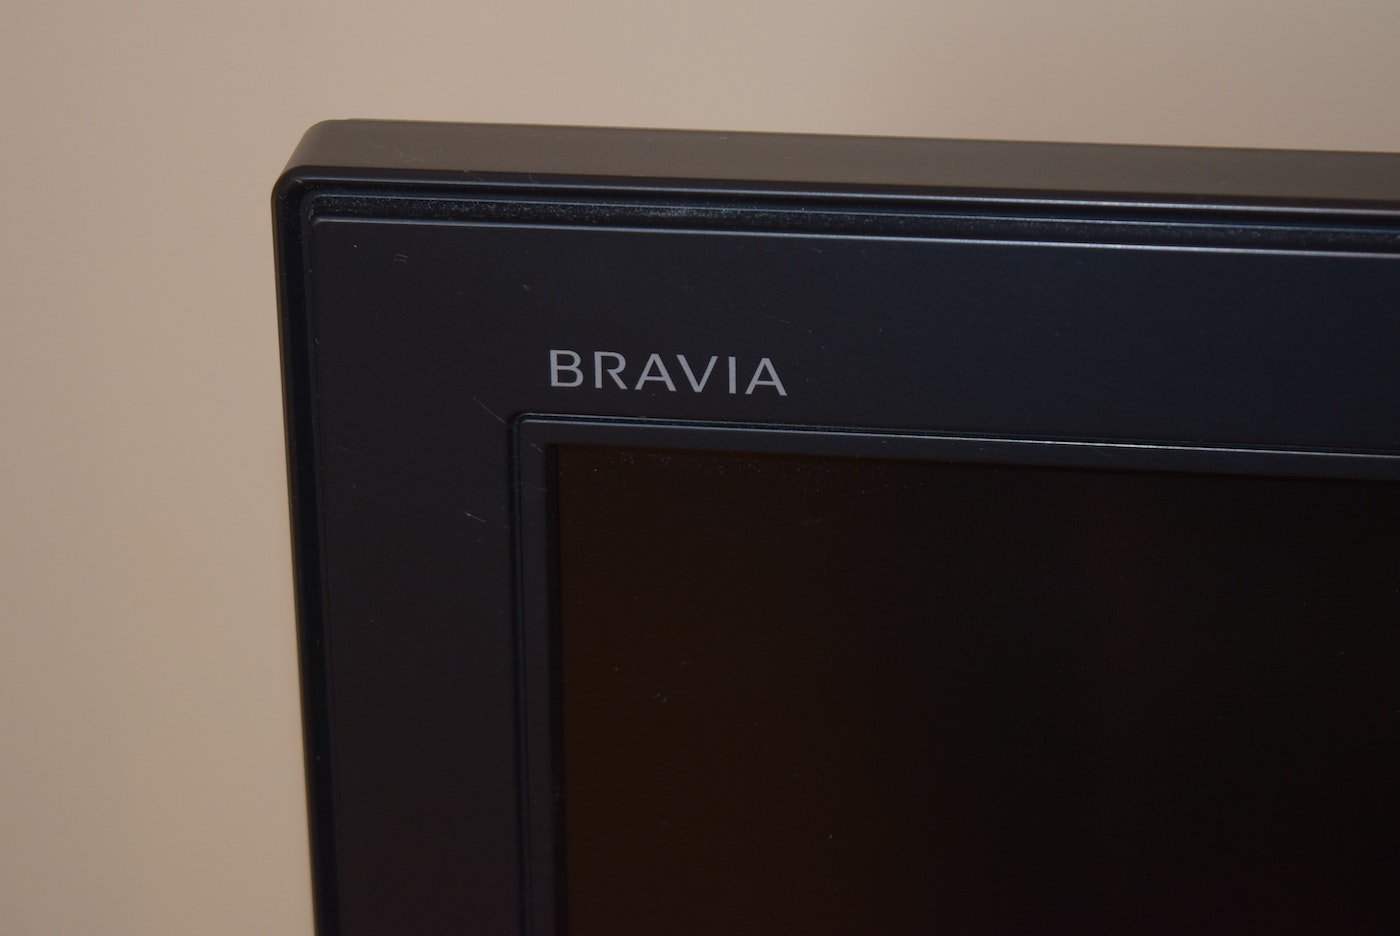 Sony bravia 22 inch led tv price in bangalore dating 3